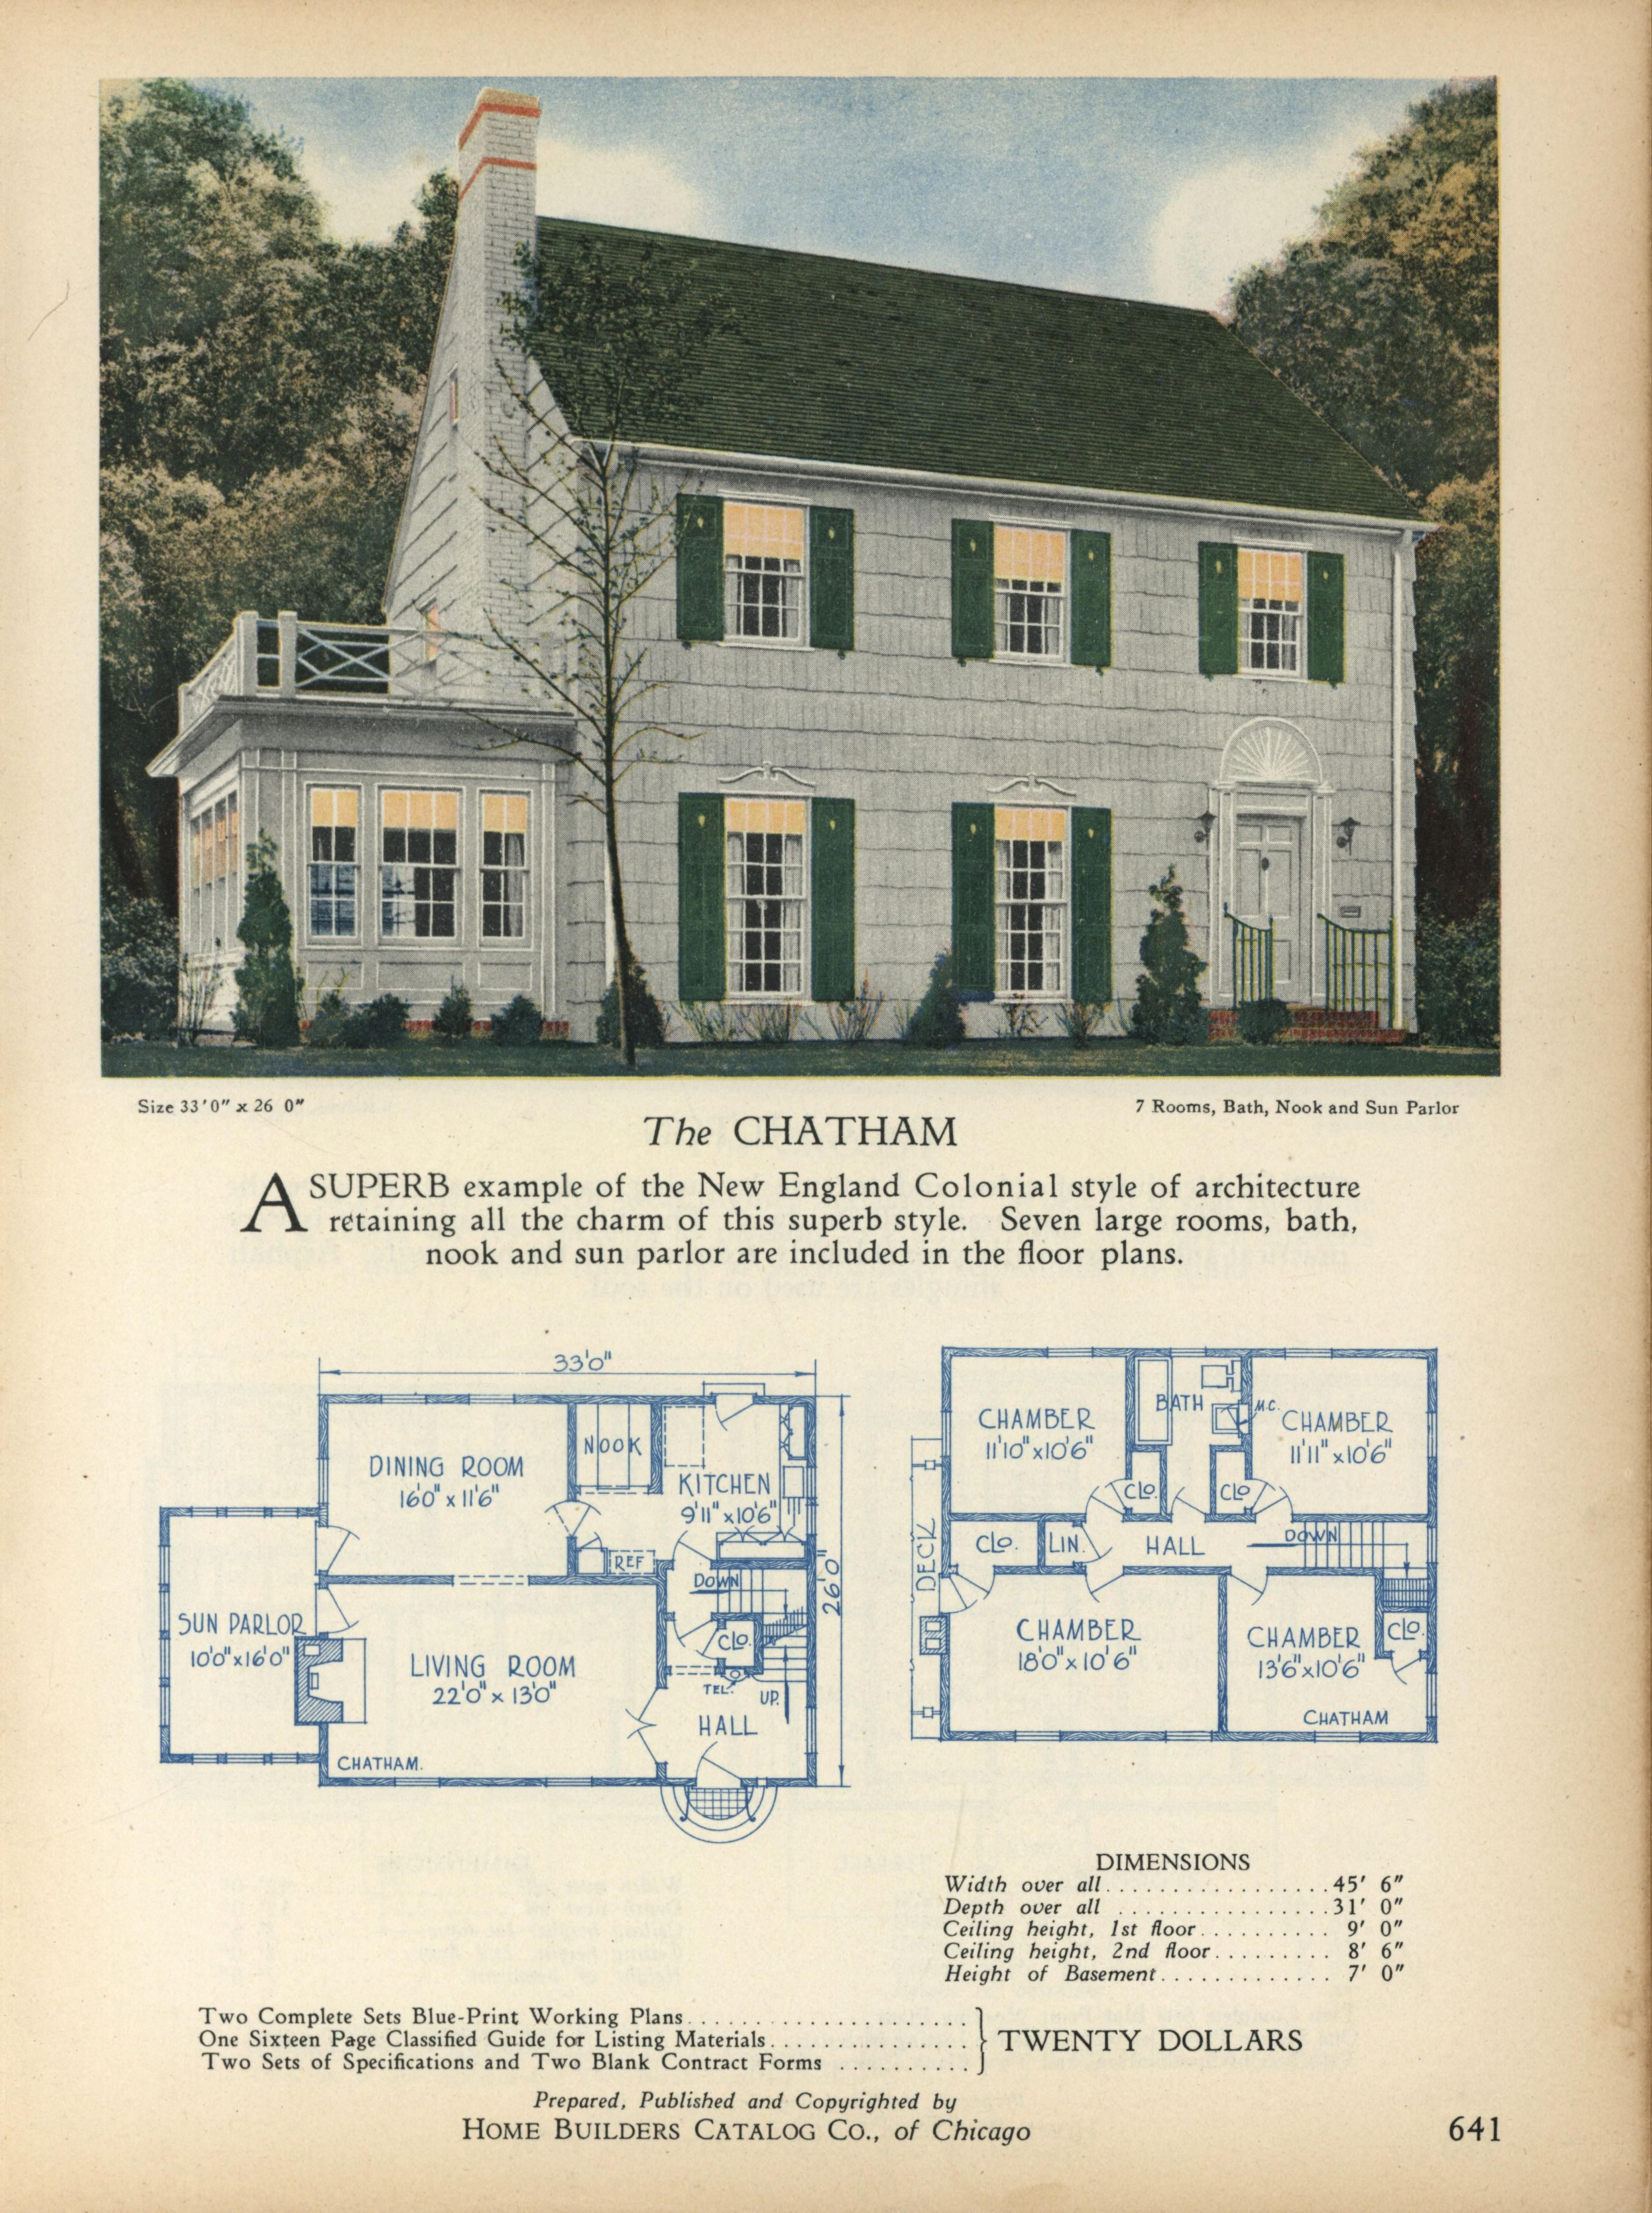 Home Builders Catalog Plans Of All Types Of Small Homes How To Plan Vintage House Plans Home Builders